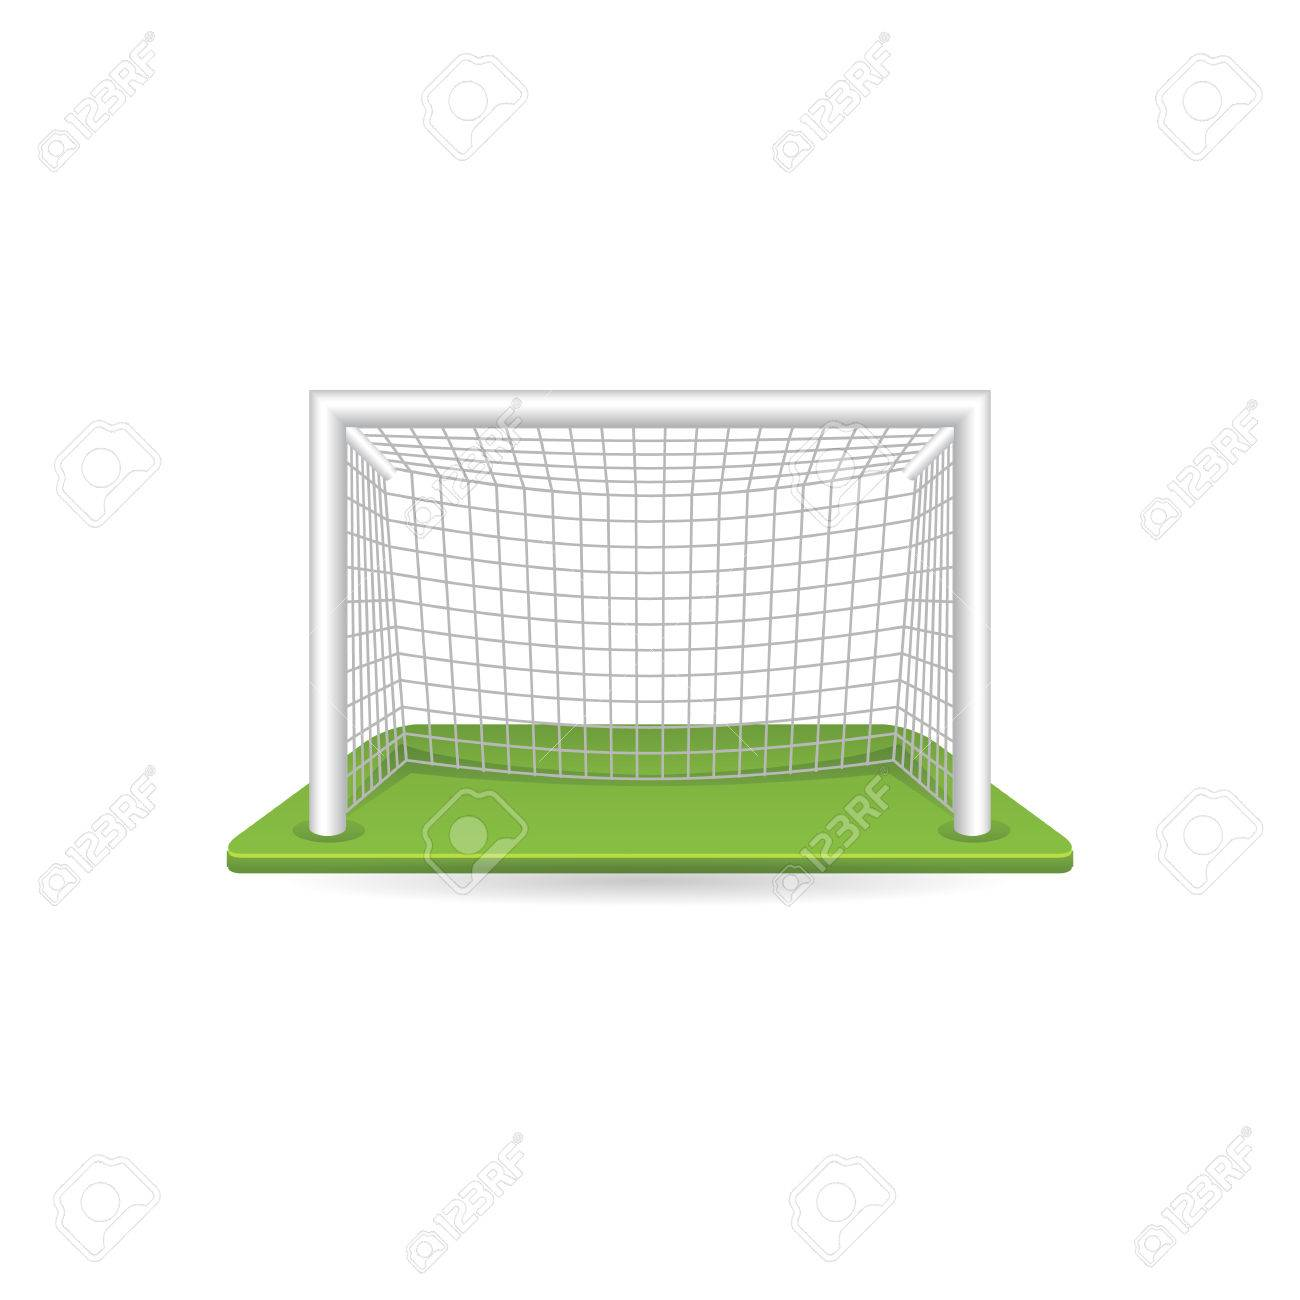 Soccer goal post clipart graphic freeuse stock Football Goal Post Clipart (104+ images in Collection) Page 1 graphic freeuse stock